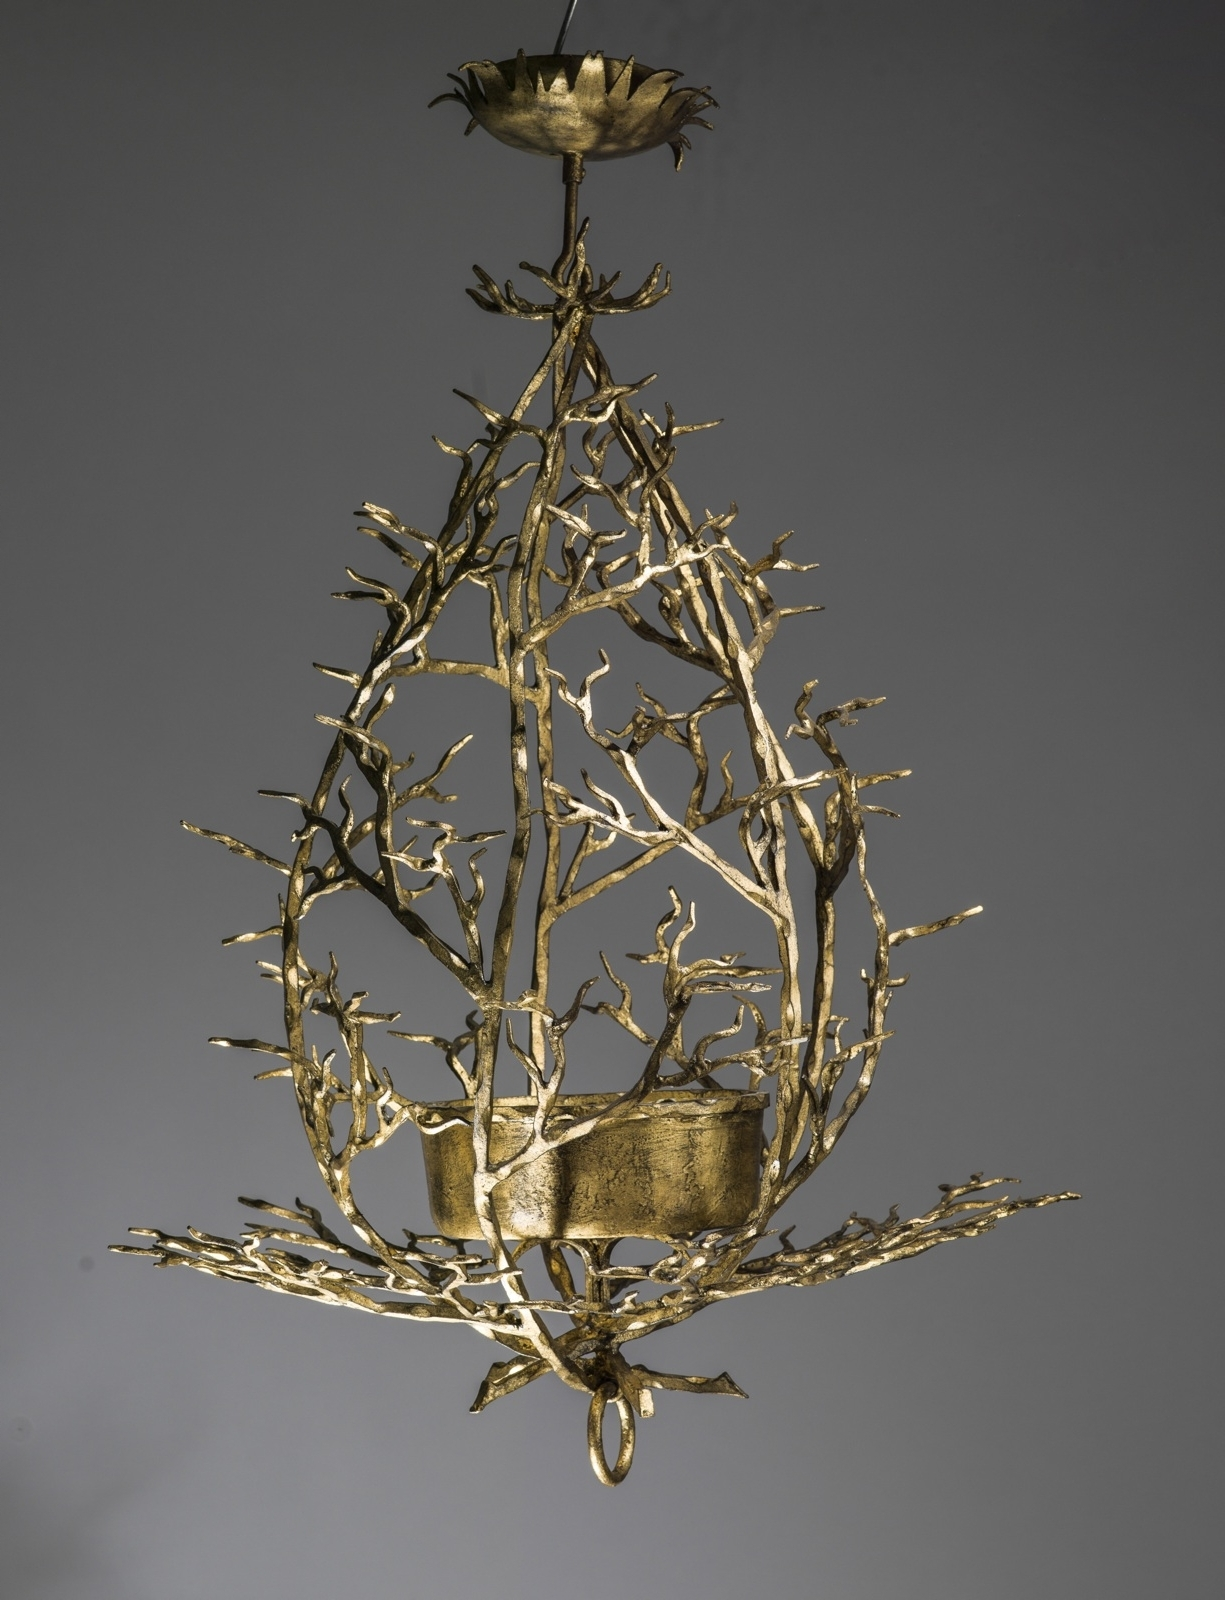 Small Wrought Iron 'twig' Chandelier In Warm Gold Leaf Finish (T3451 Regarding Fashionable Gold Leaf Chandelier (View 16 of 20)